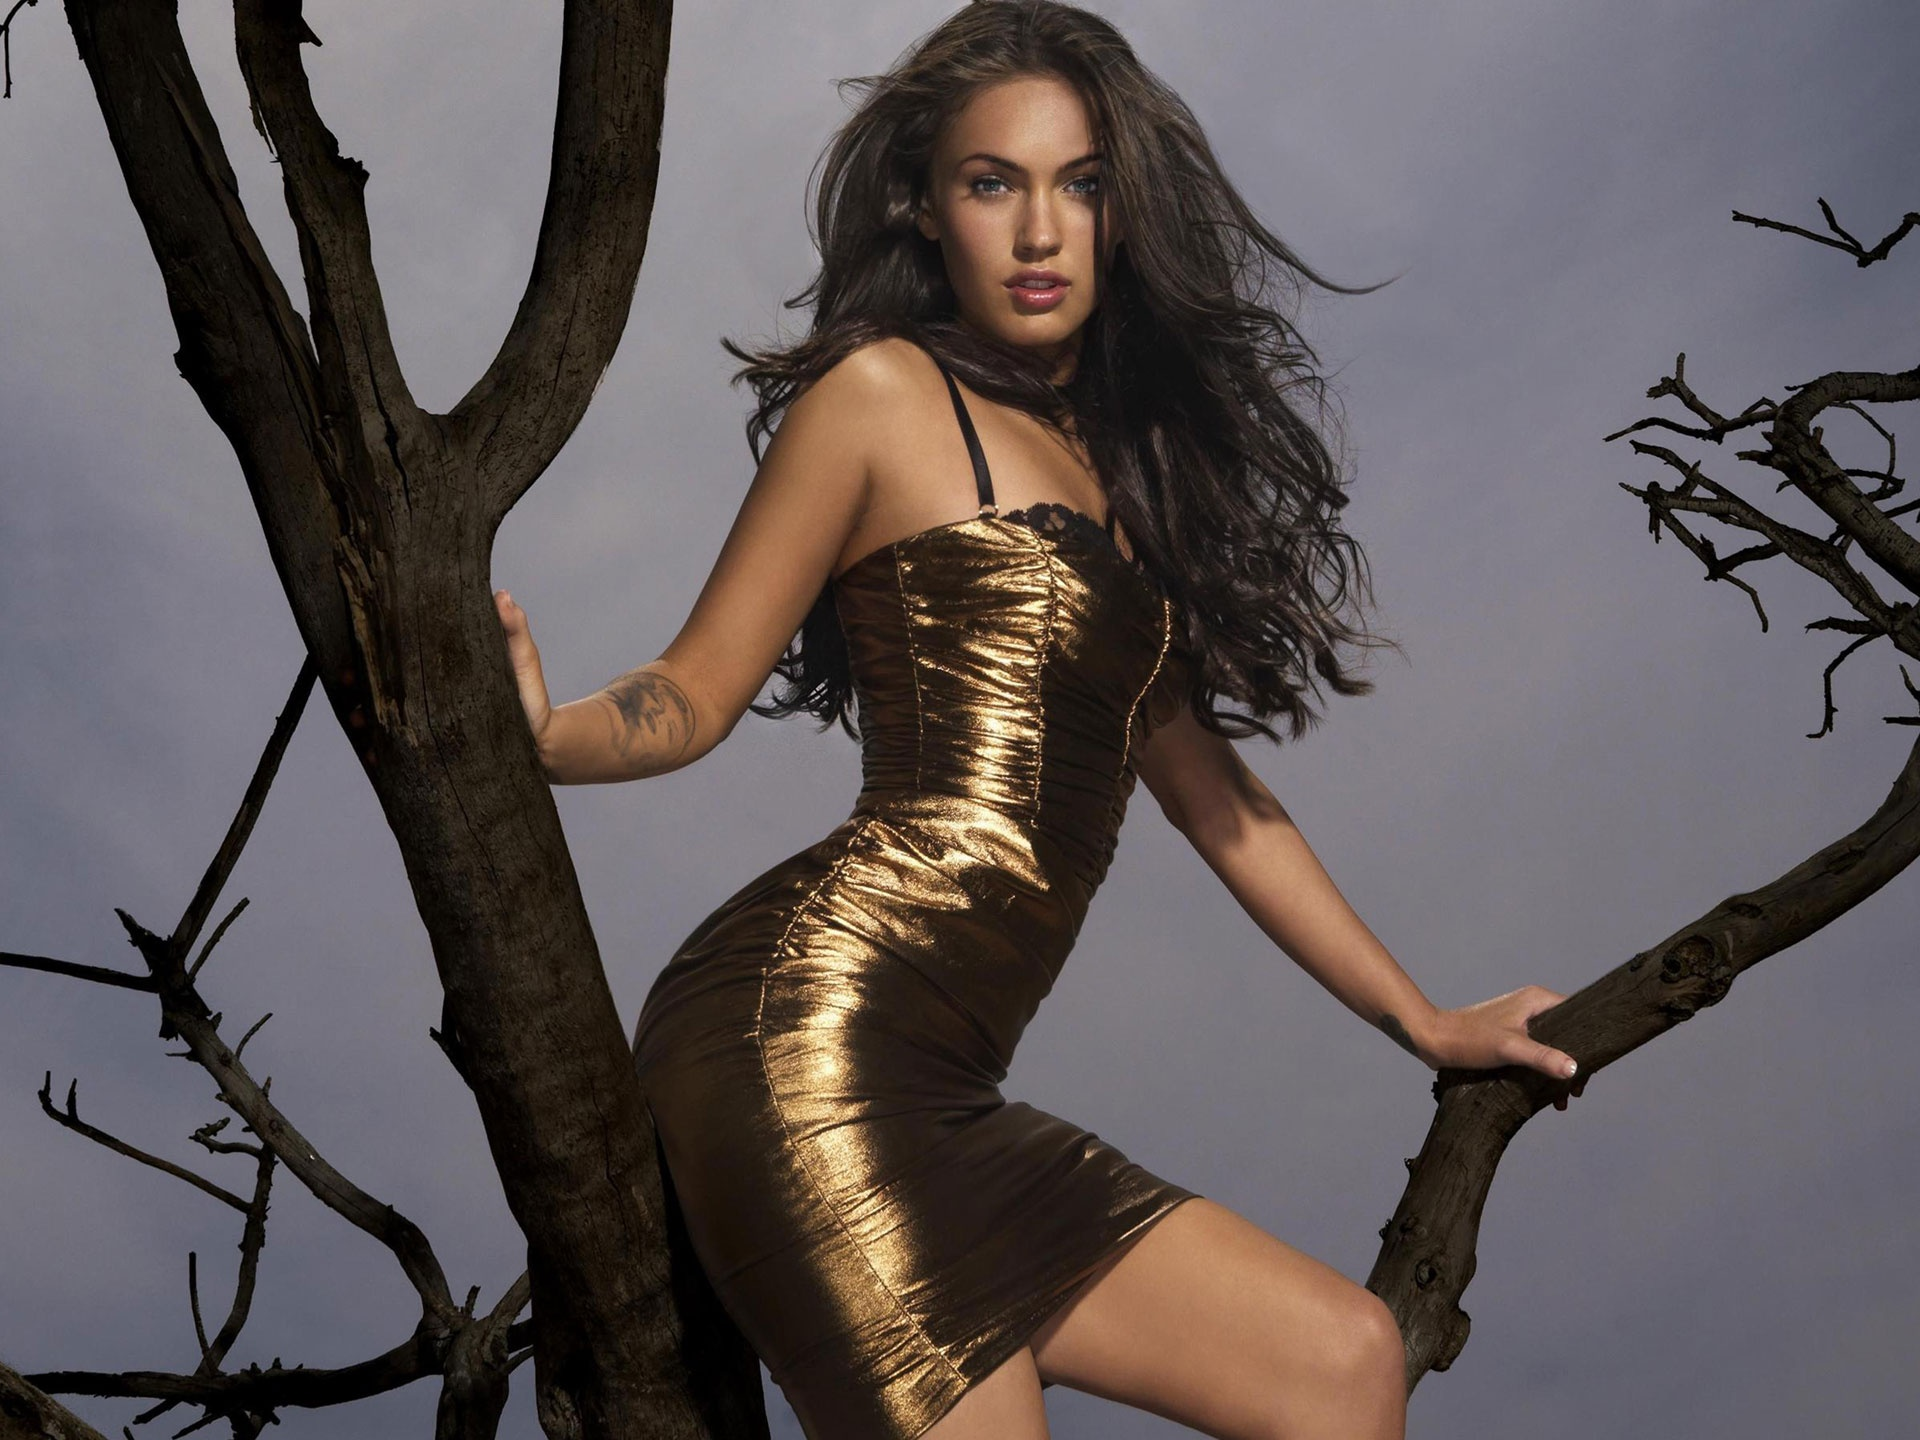 megan-fox-wearing-gold-dress-